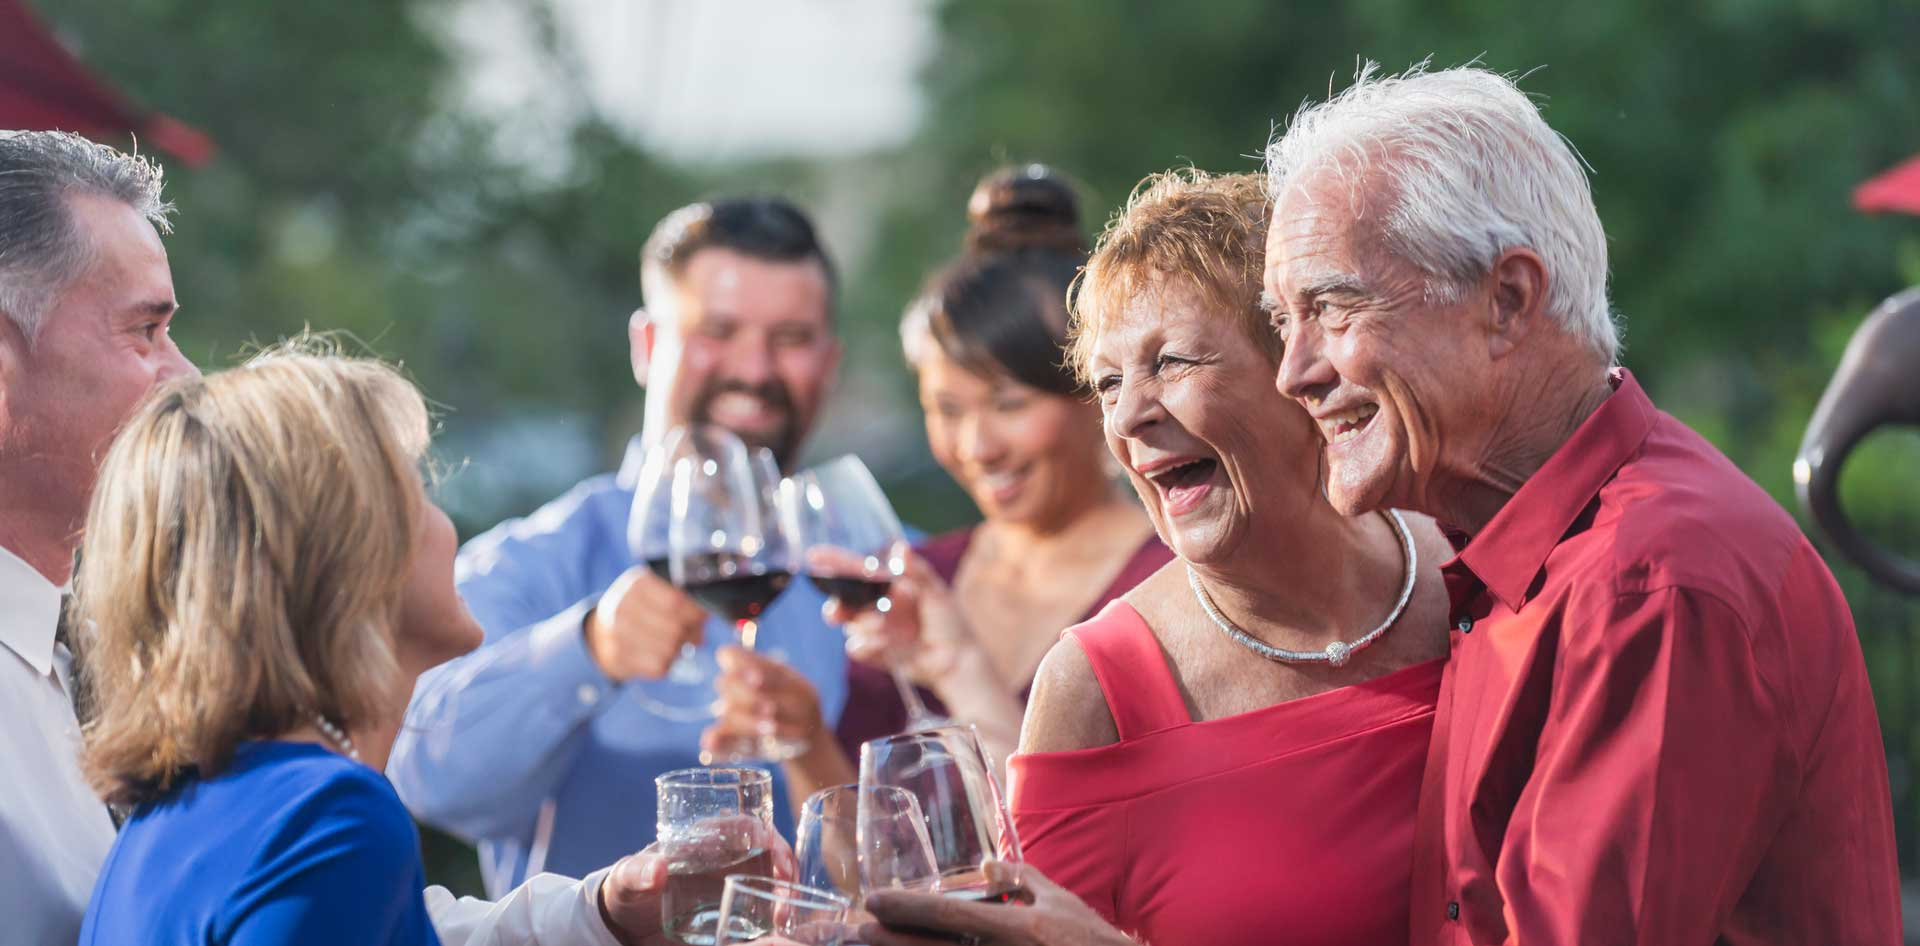 Group of elderly couples laughing and toasting with their wine glasses